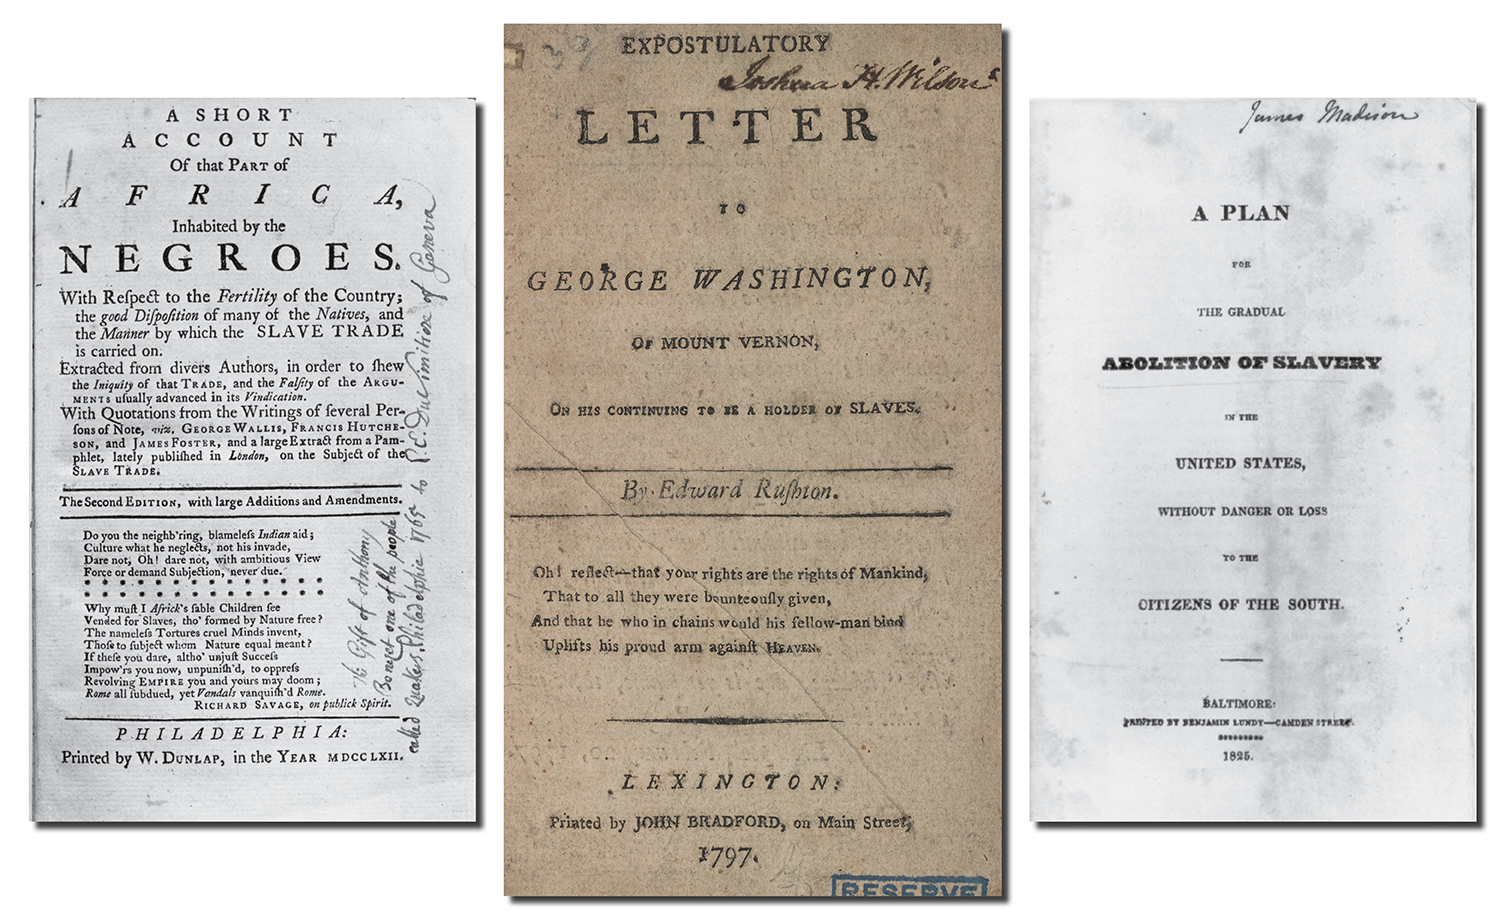 From left: An abolitionist pamphlet published in Boston in 1762. The cover of a 1797 letter to George Washington on his continuing to enslave people from Edward Rushton, a British abolitionist. The title page of a pamphlet from former U.S. President James Madison proposing the gradual abolition of slavery without endangering the economic and social stability of the South.